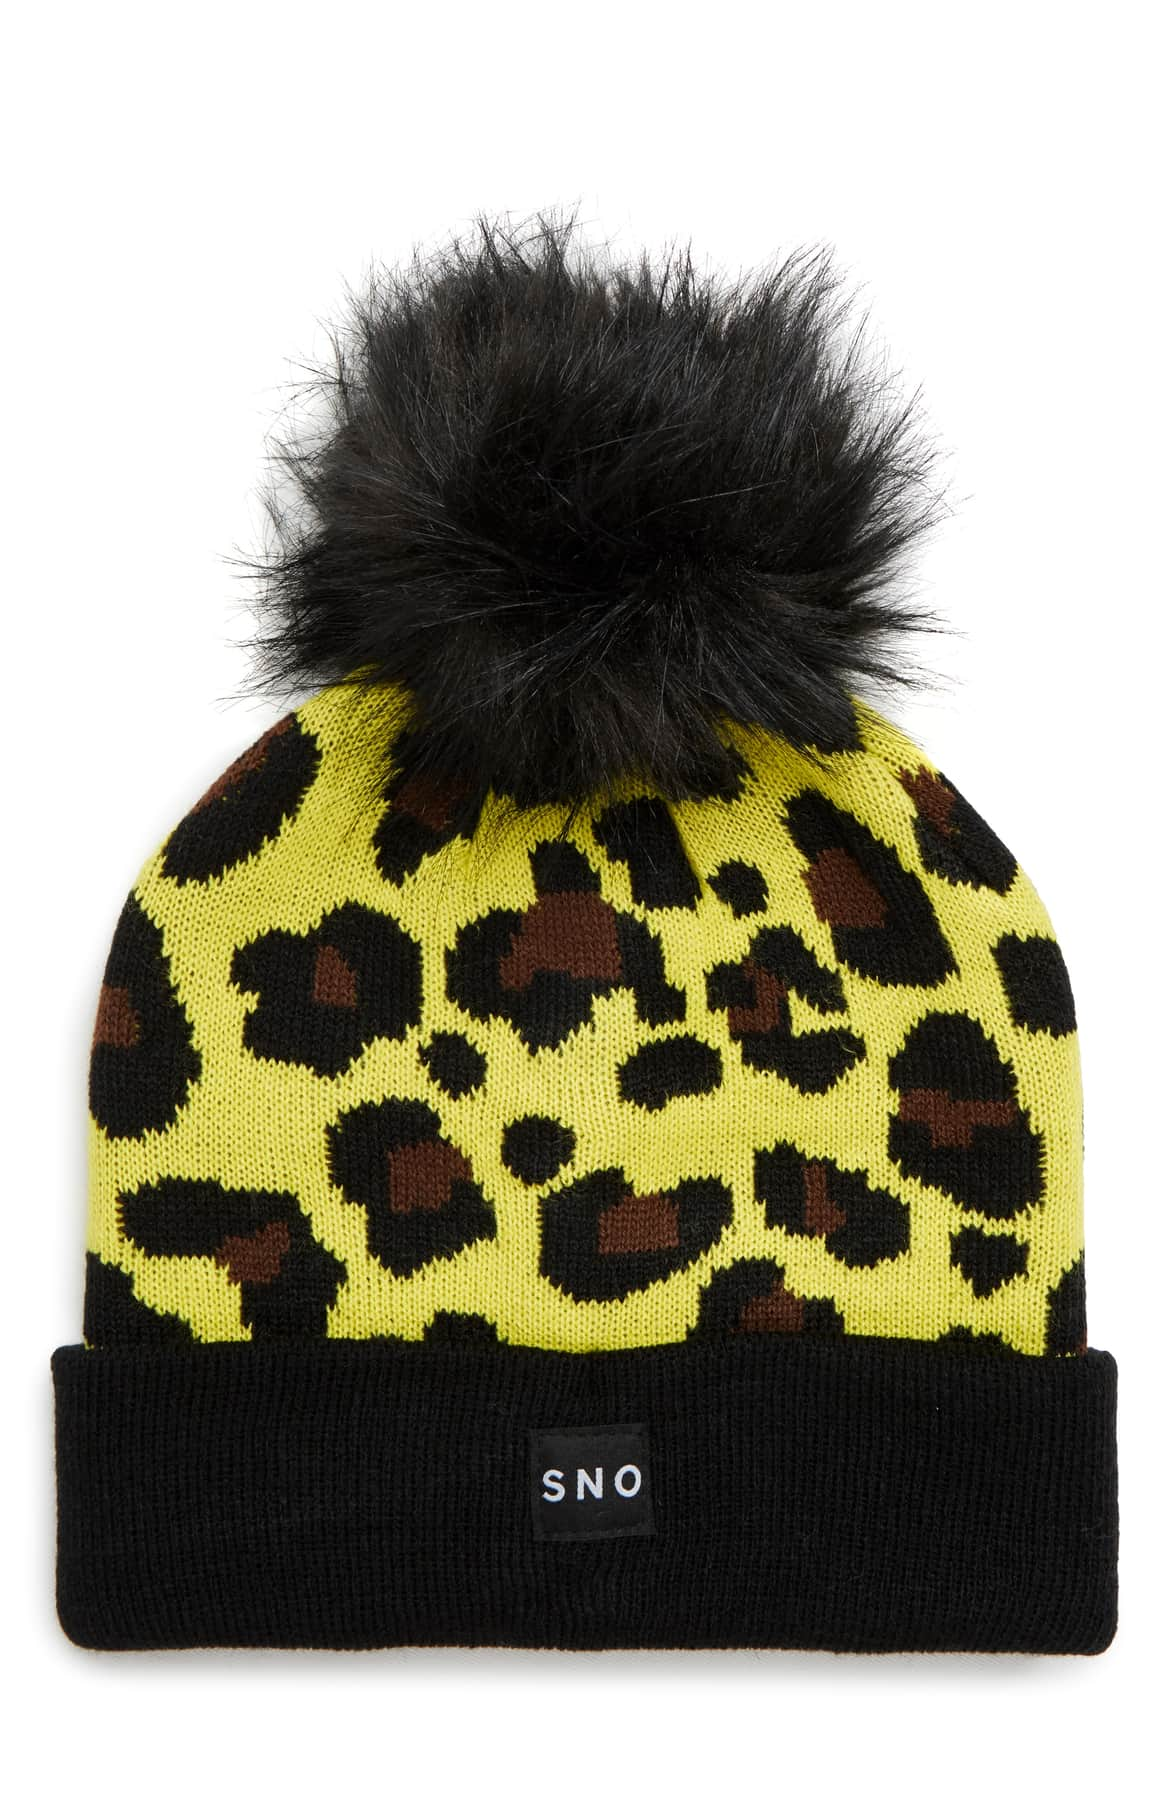 <p>This bright yellow beanie goes glam with leopard spots and a fluffy faux-fur pompom. $30.00 (Image: Nordstrom){&nbsp;}</p><p></p>